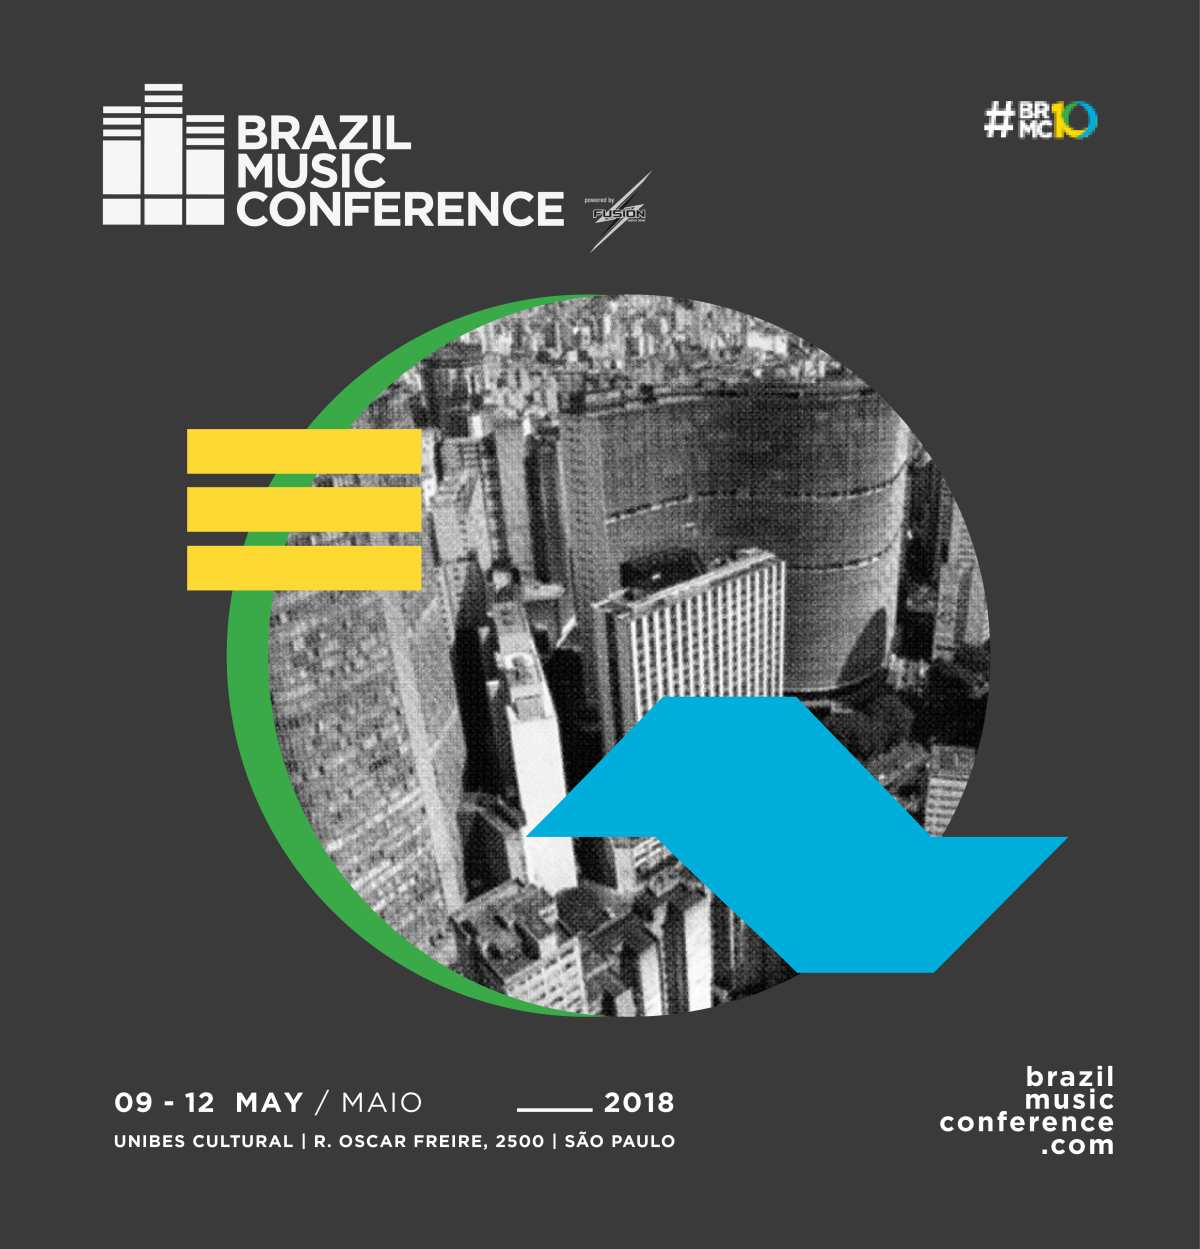 Brazil Music Conference